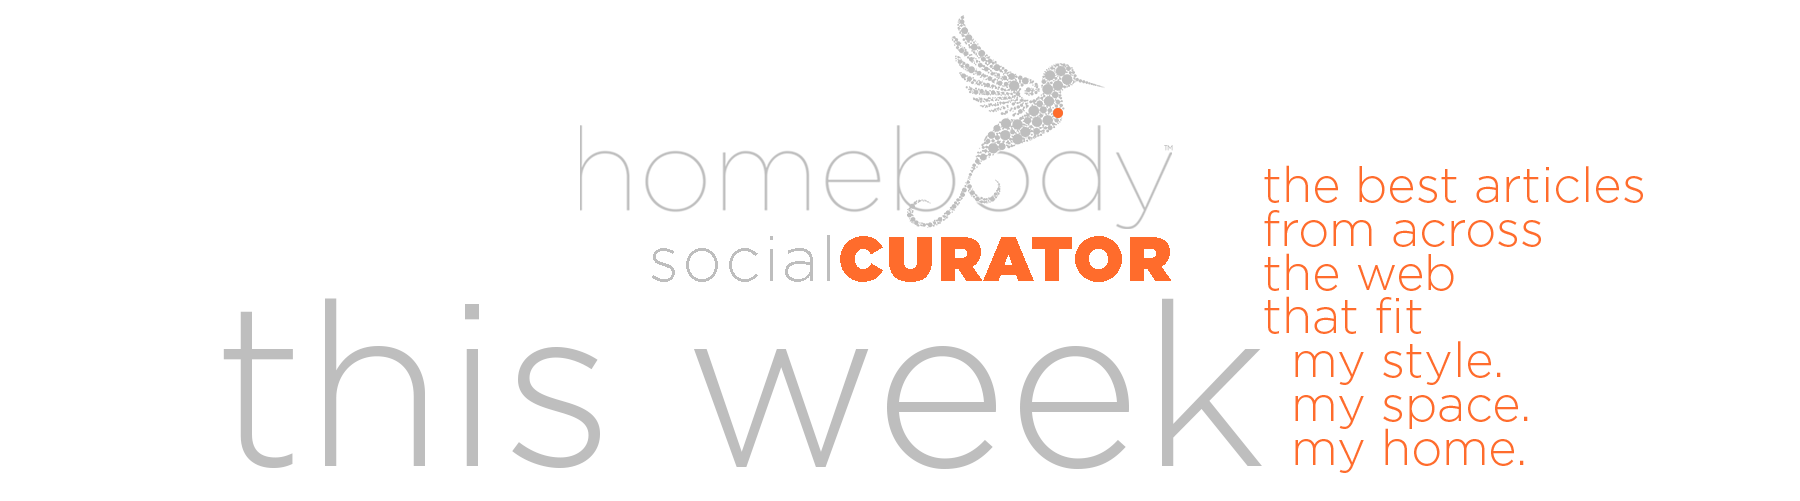 HomeBody® socialCURATOR for the Week of 1.20.2020 The best articles from across the web that fit my style. my space. my home. That's the Homebody socialCURATOR. Updated weekly!